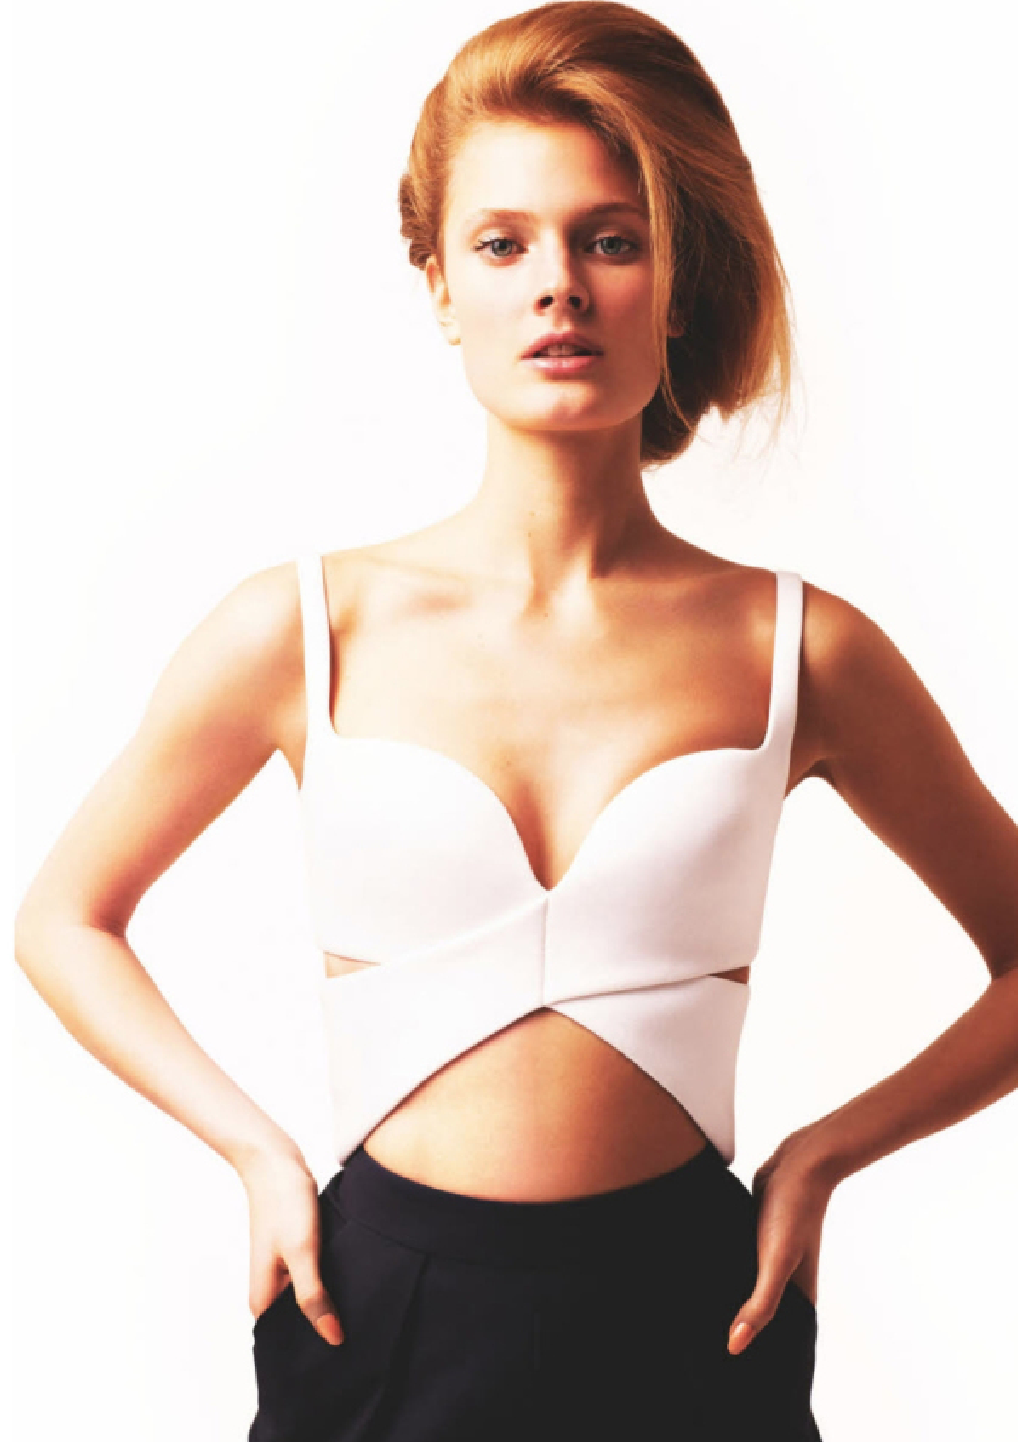 Numro March 2013 Balenciaga Bustier by Katja Rahwles